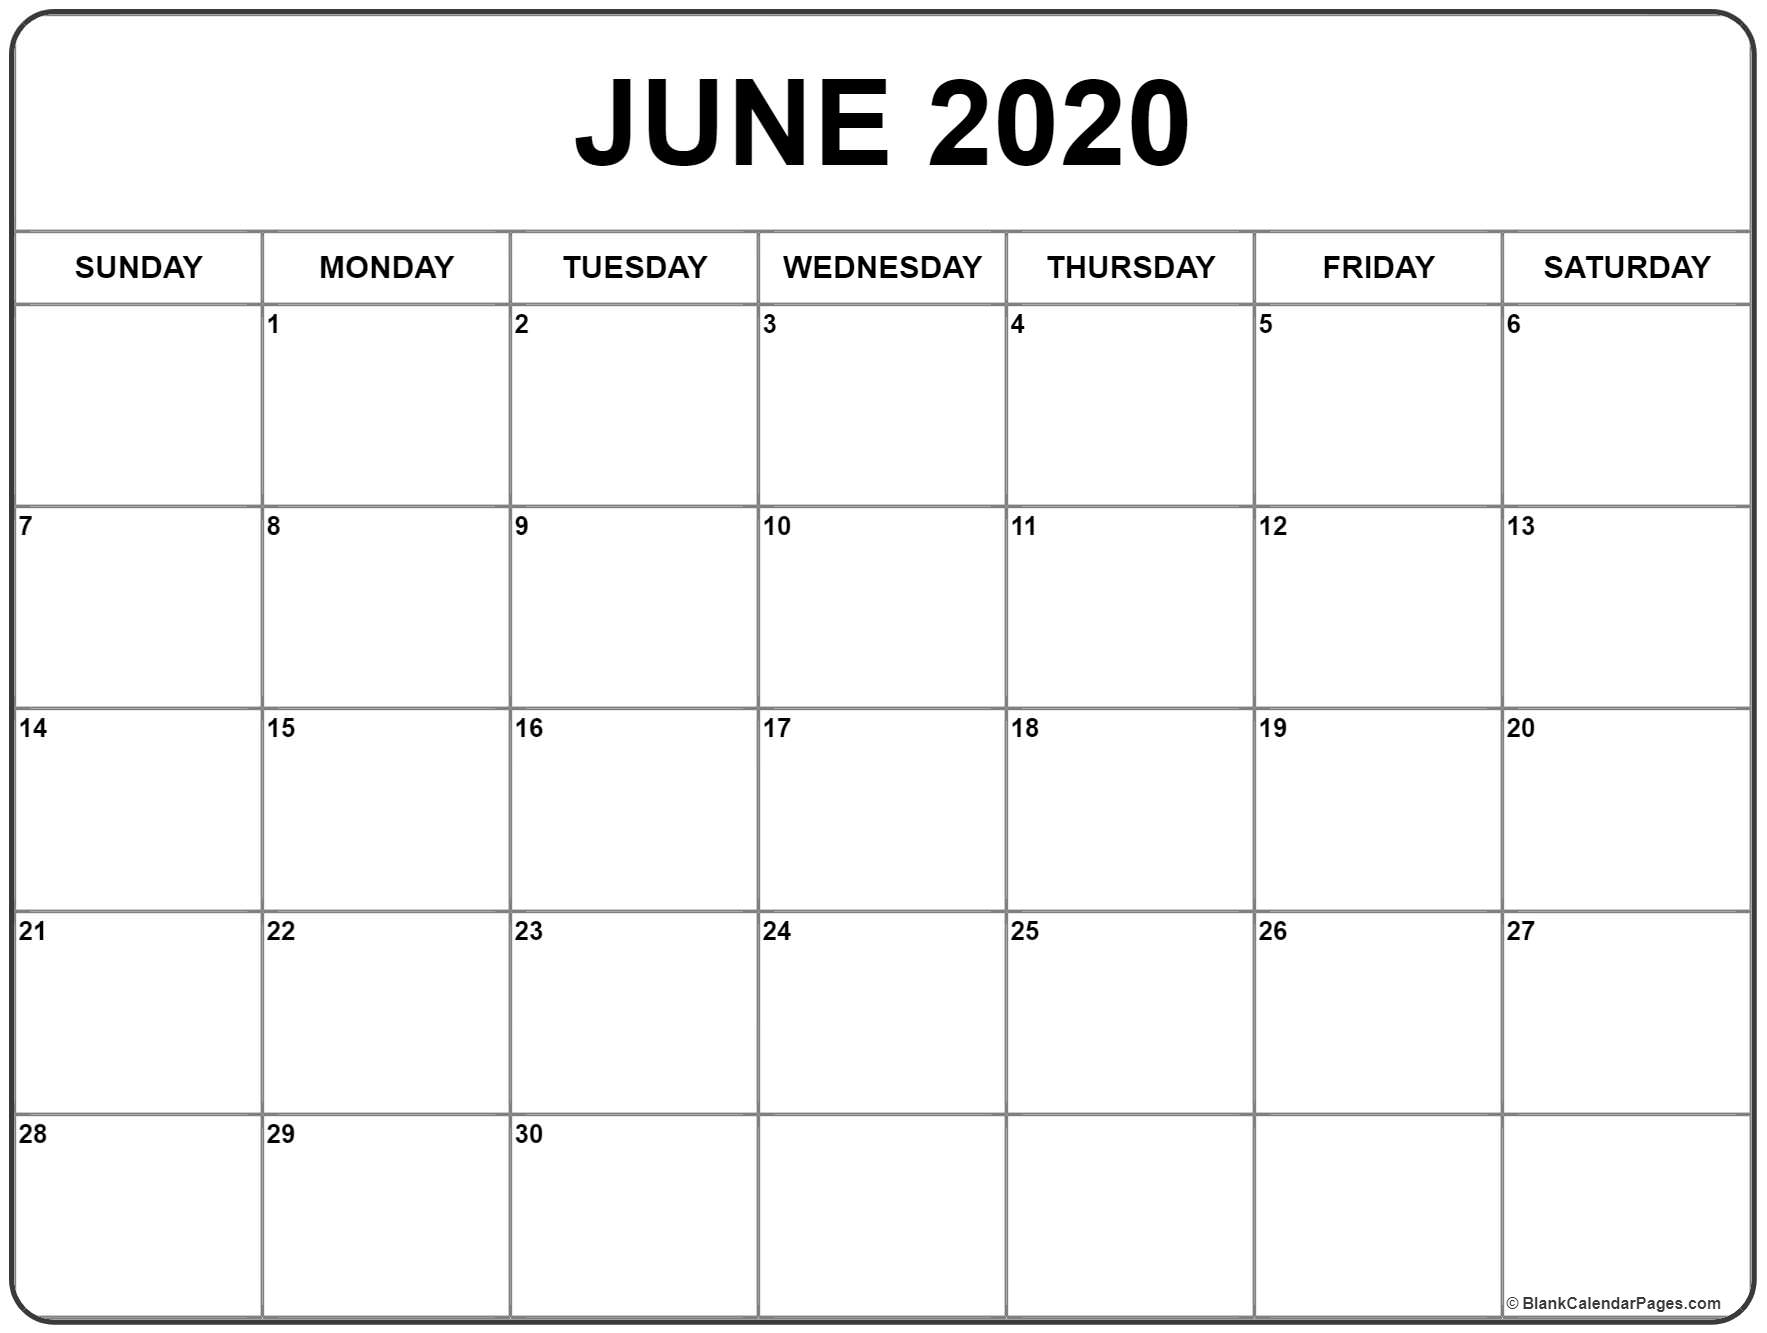 June 2020 Calendar | Free Printable Monthly Calendars throughout July 2019-June 2020 Printable Calendar